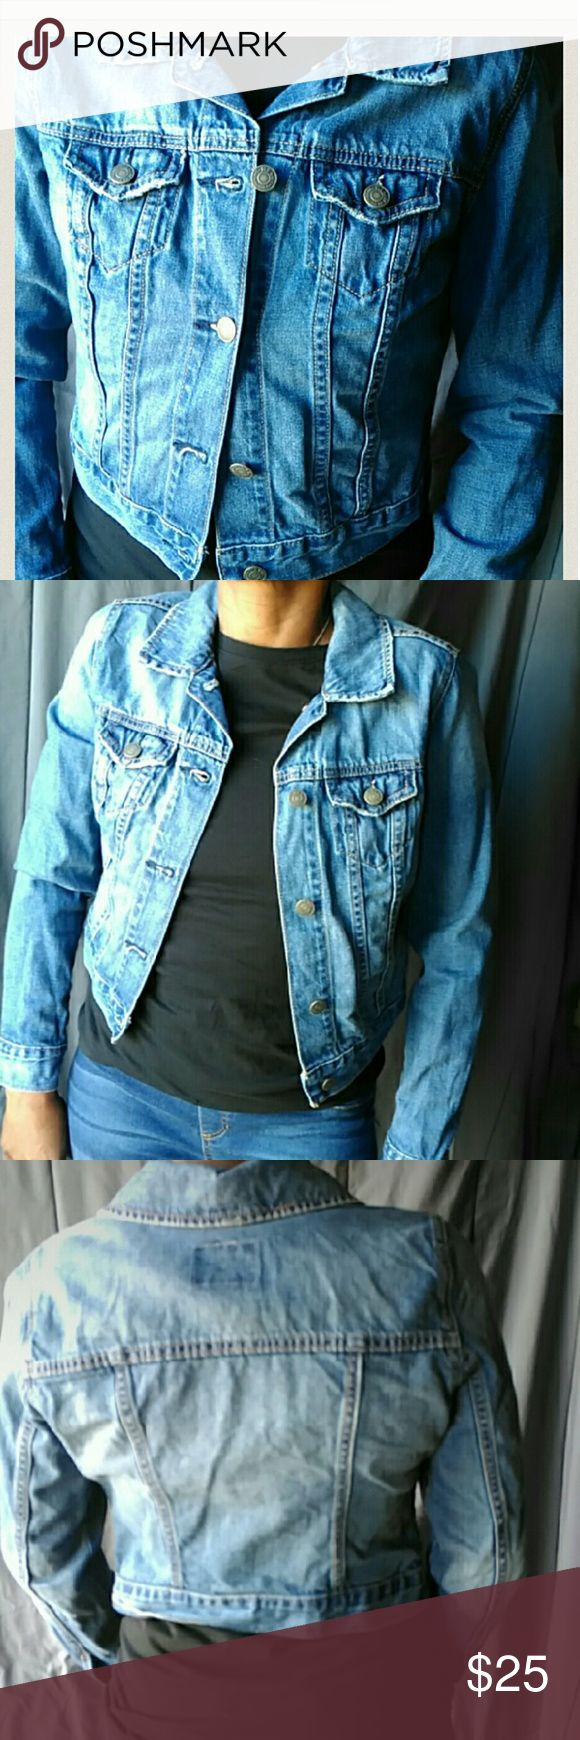 Old Navy Dark Blue Jean Jacket XS jean jacket. In excellent condition. Old Navy Jackets & Coats Jean Jackets